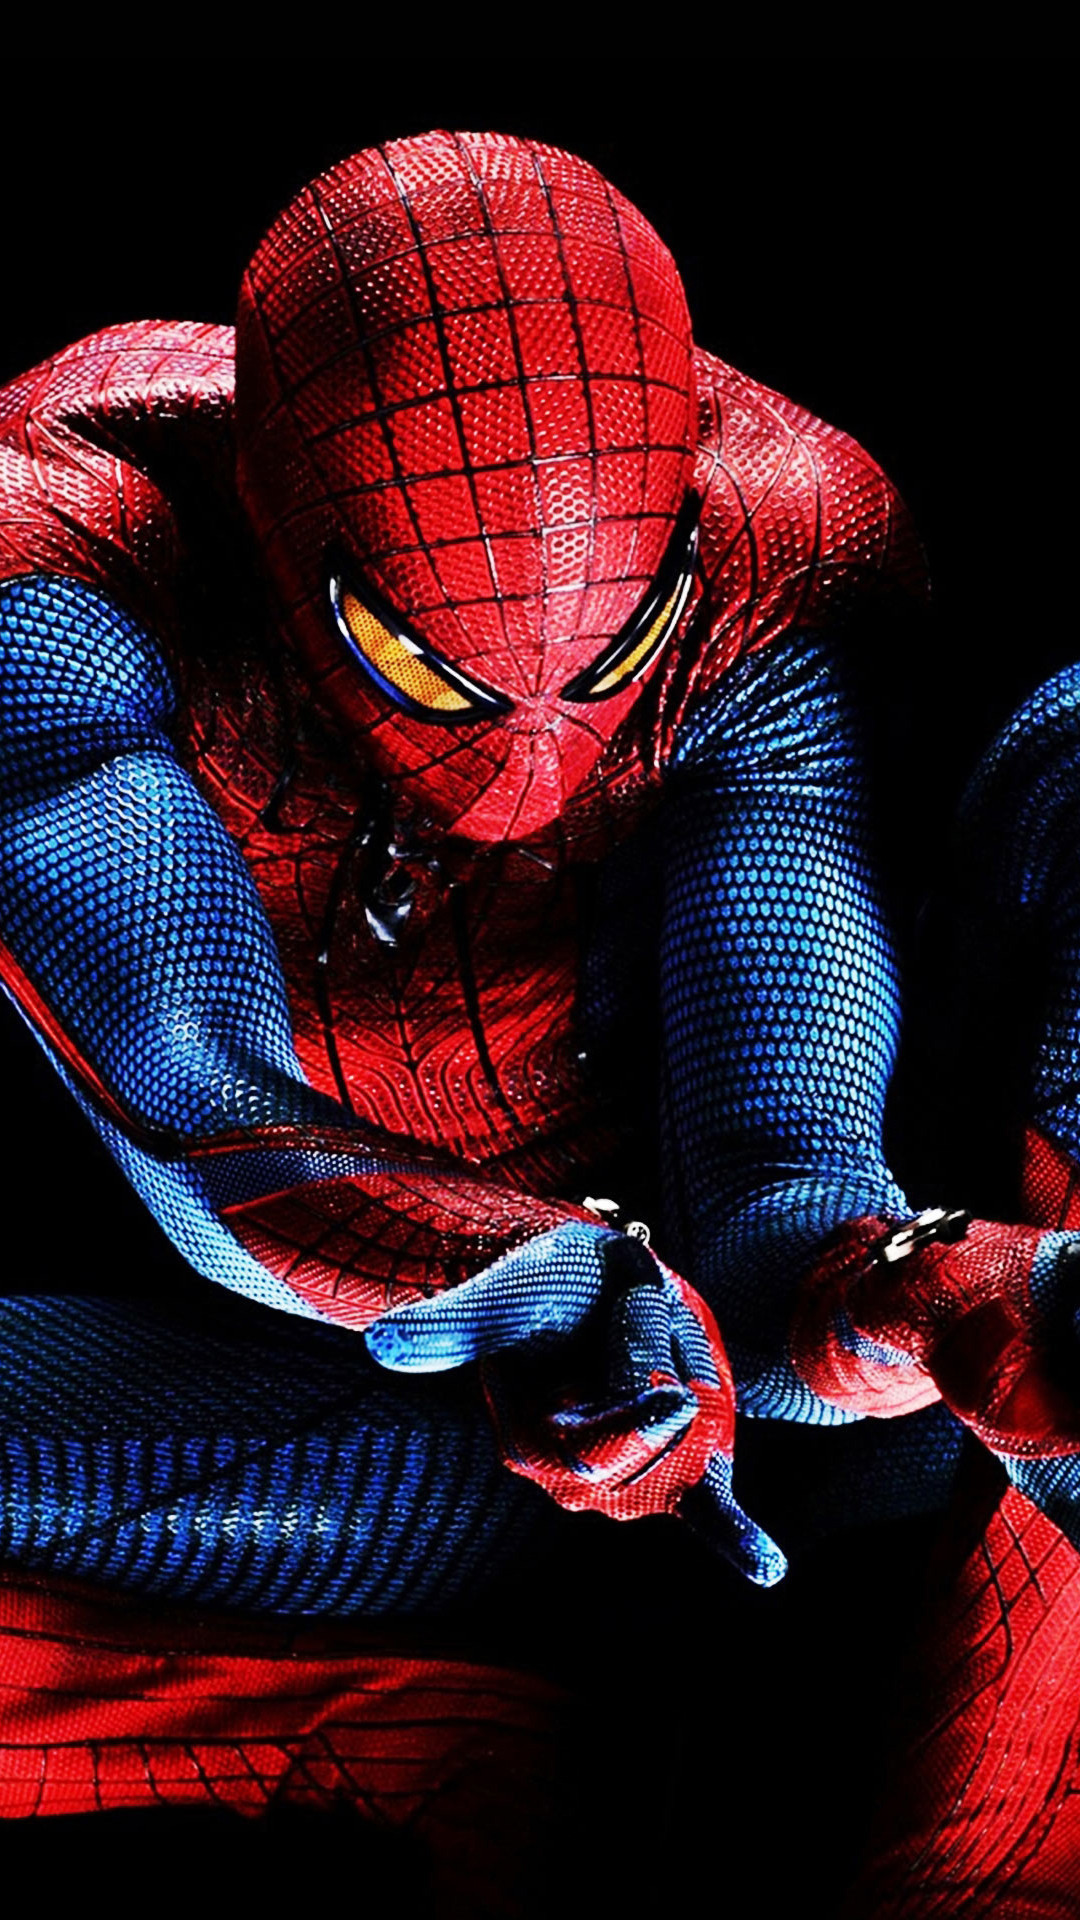 Spiderman iphone wallpaper hd 83 images - Iron man spiderman wallpaper ...